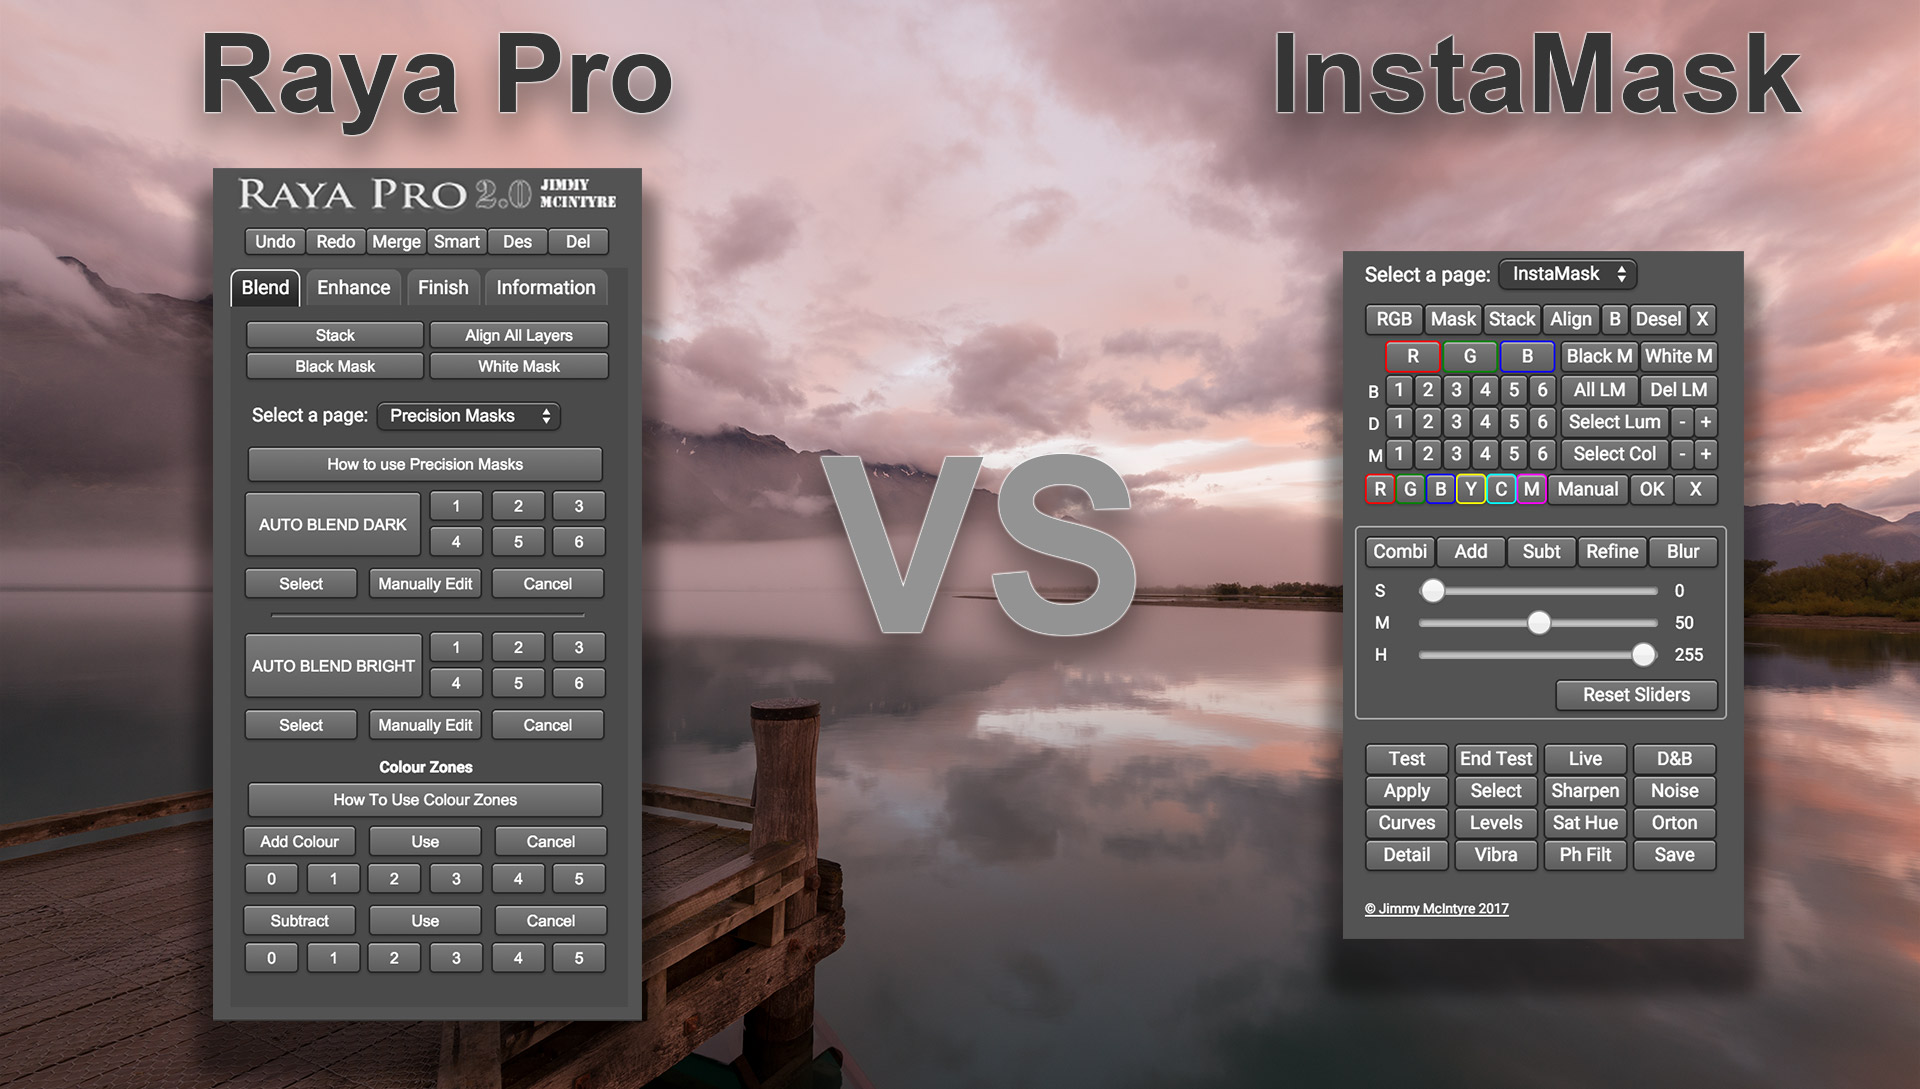 Raya Pro vs InstaMask – What is the Difference?